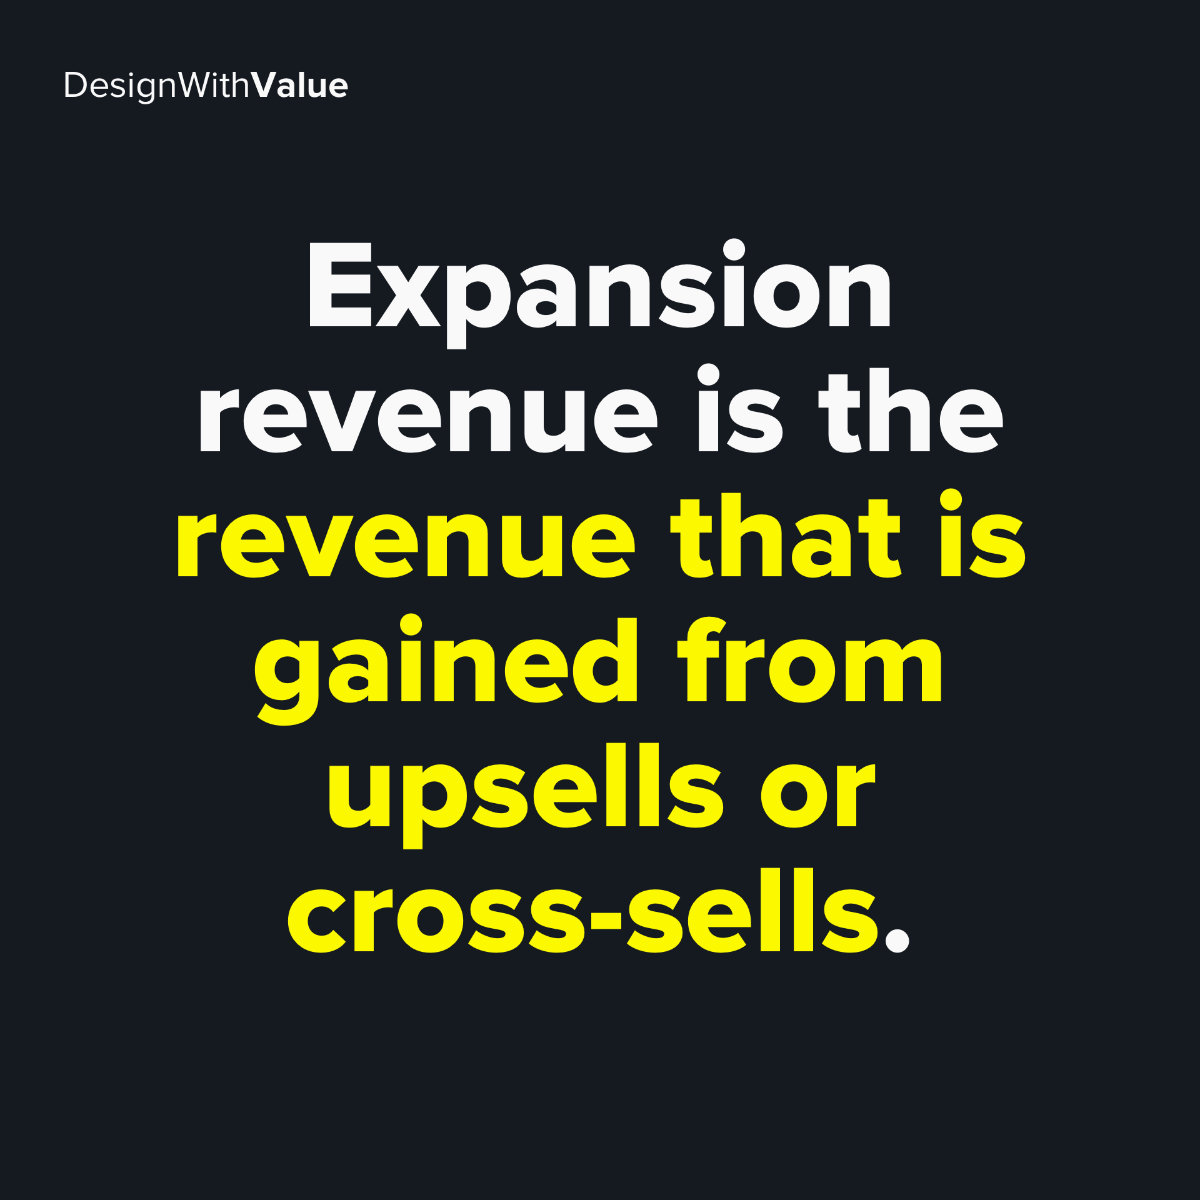 Expansion revenue is the revenue that is gained from upsells or cross-sells